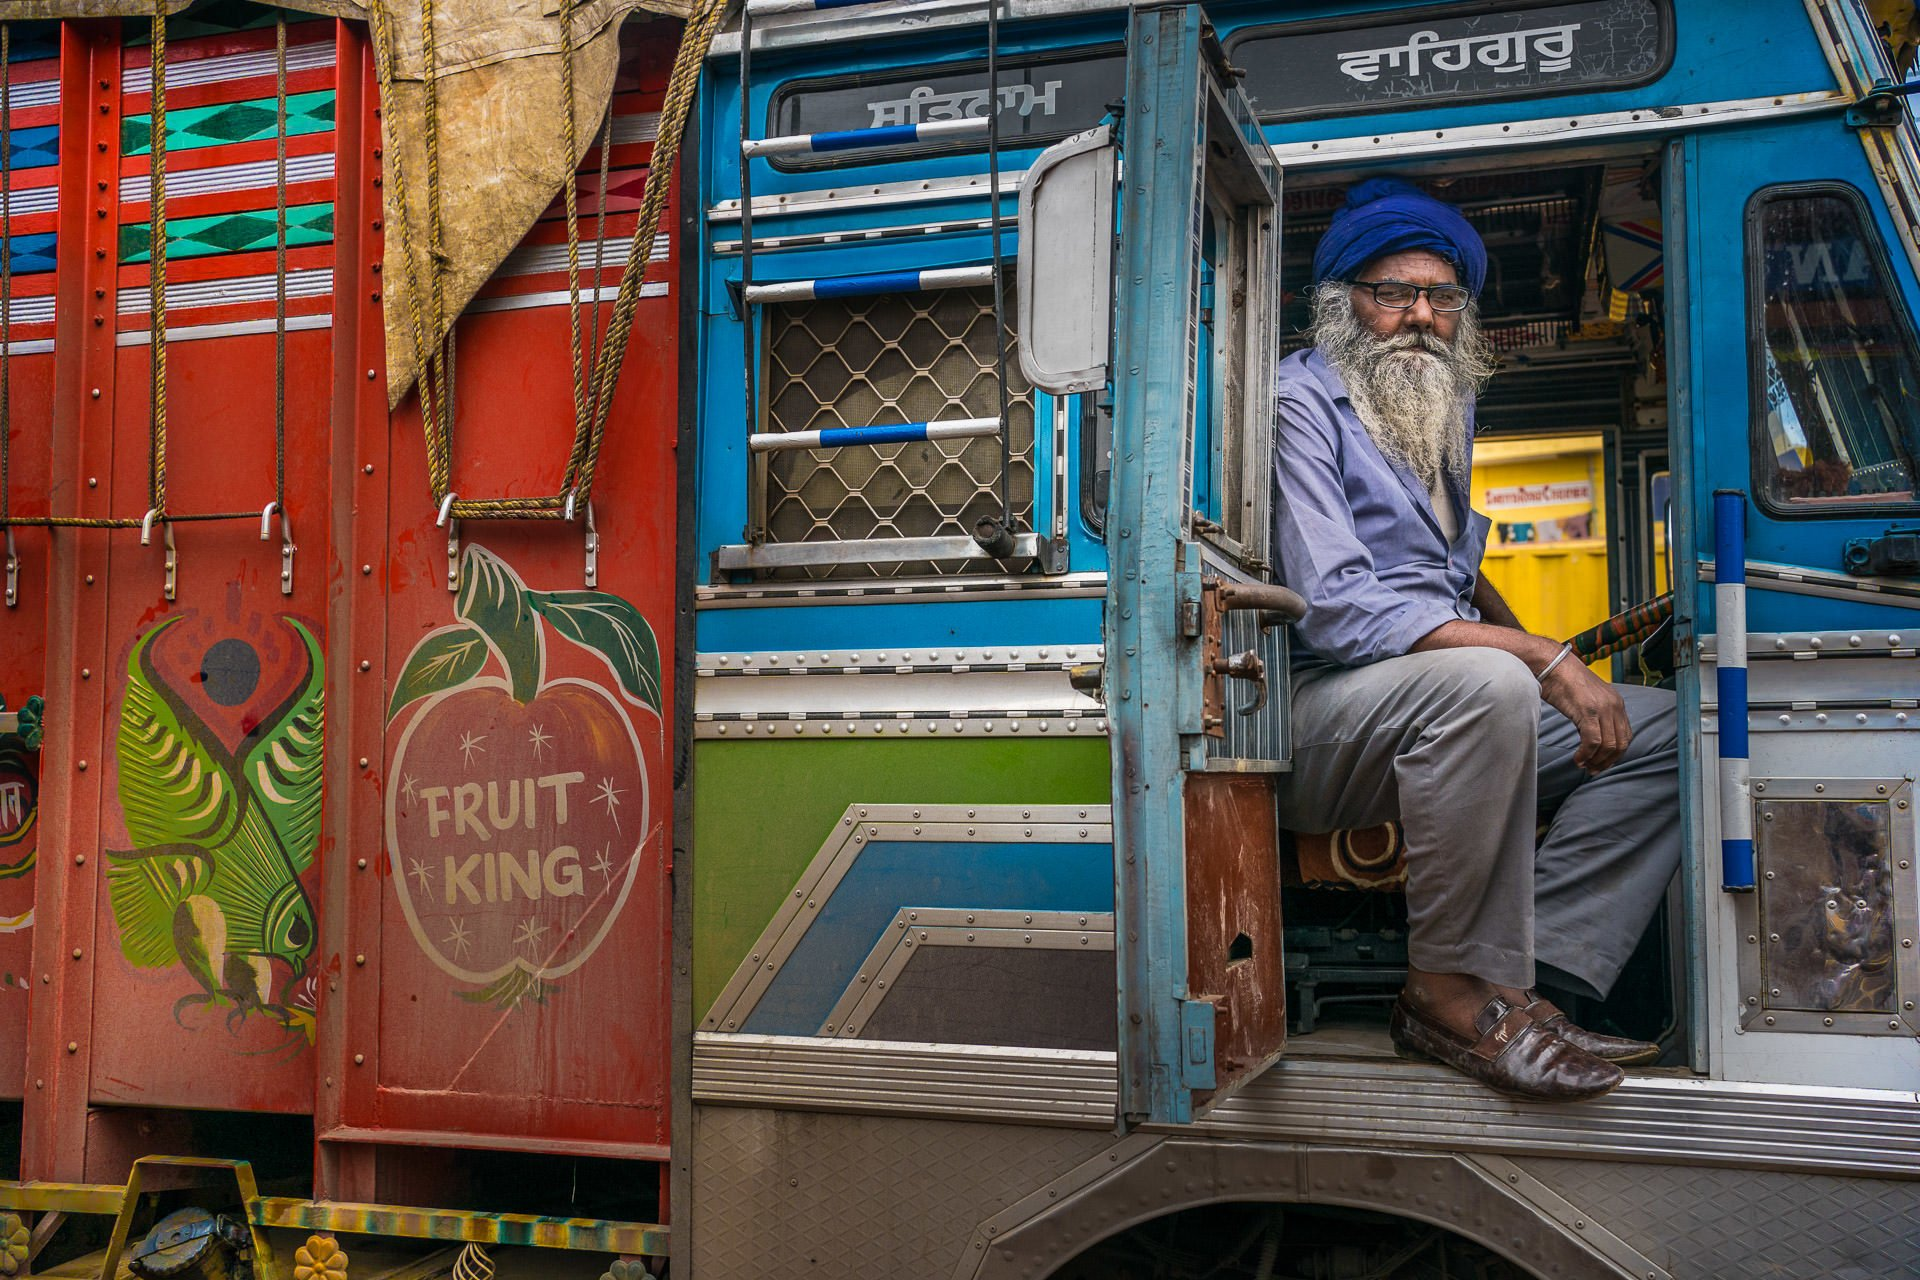 Trucking in india | Eye Camps for Indian truck drivers